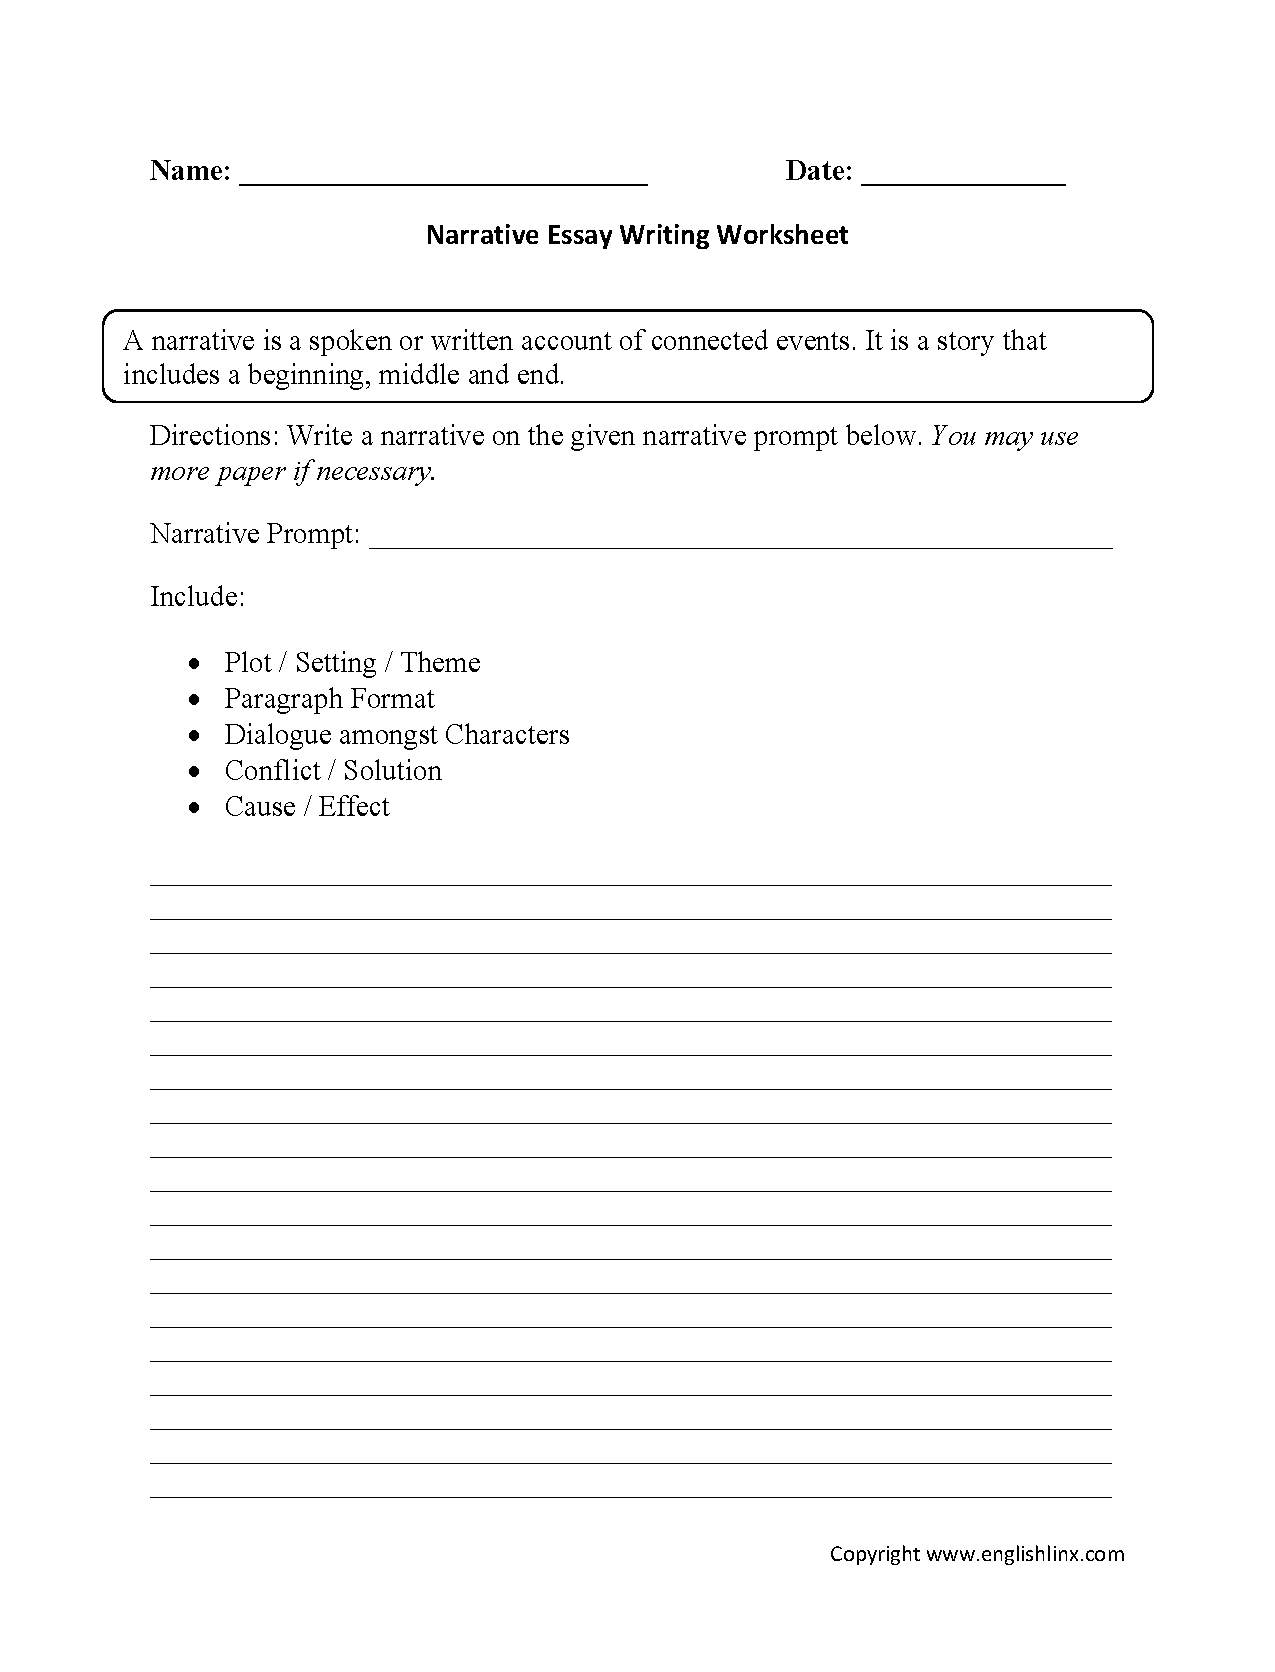 writing narrative essay worksheet gq writing narrative essay worksheet